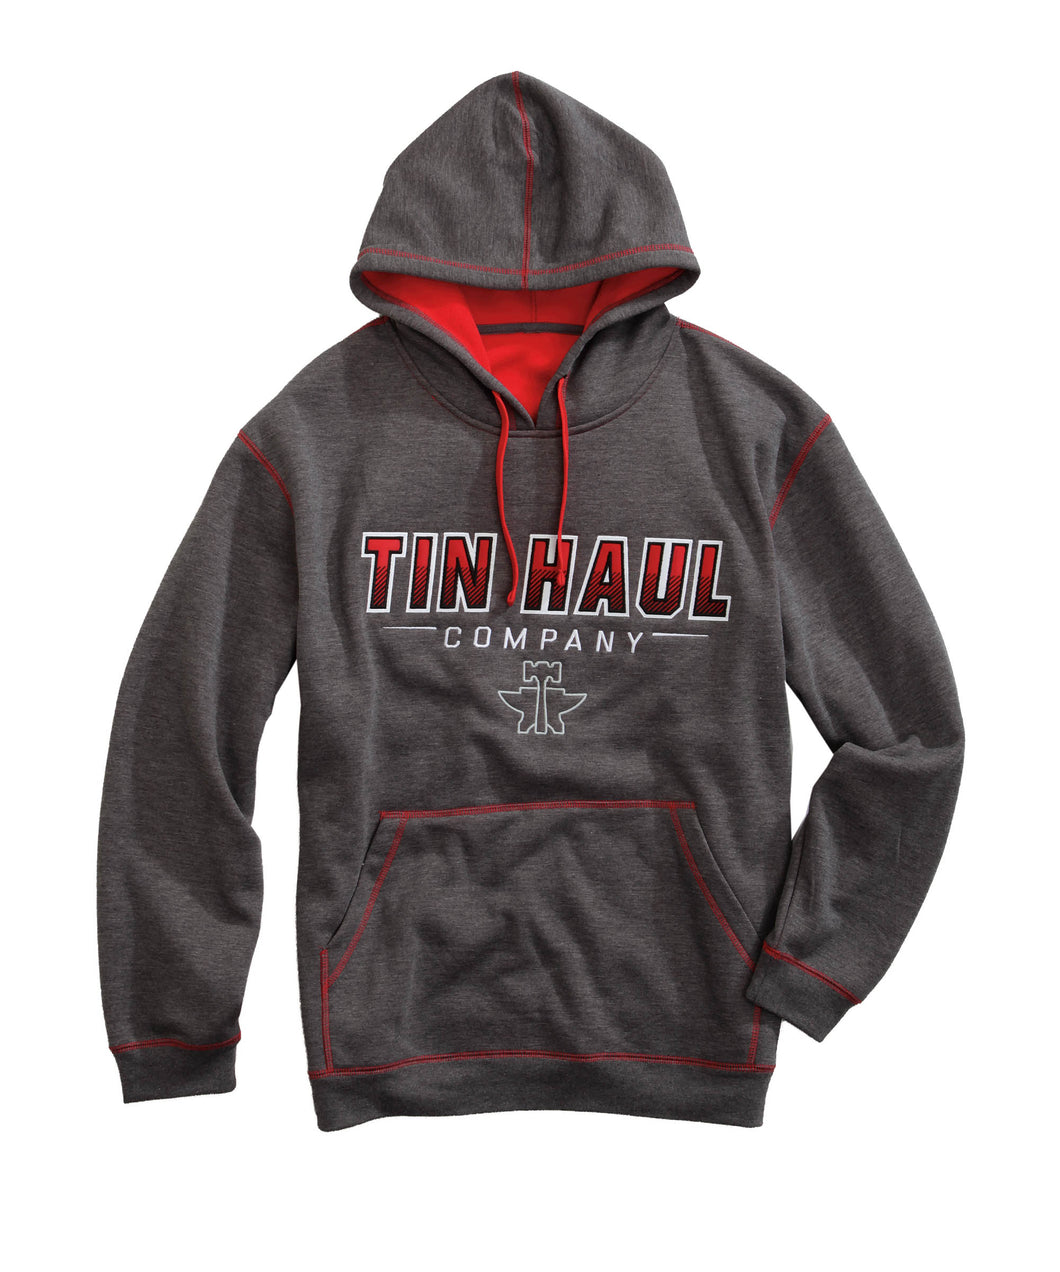 Tin Haul Hoodies Tinhaul Mens Jacket Obmbe Applique With Tin Haul